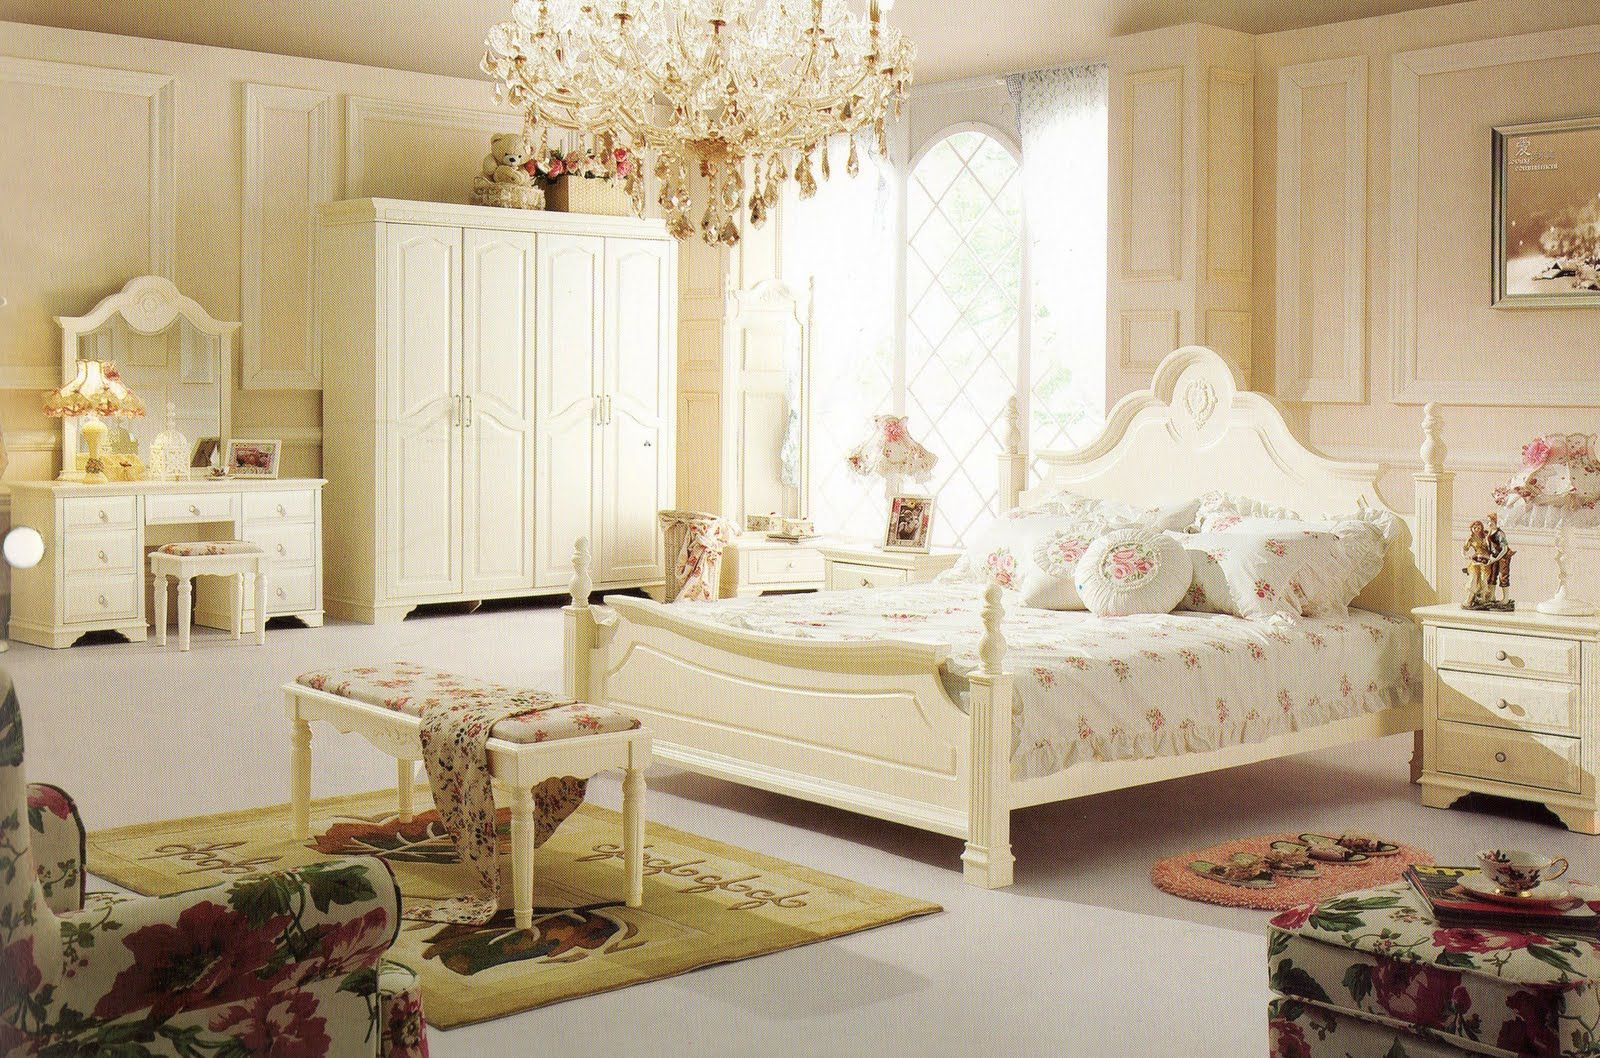 Pictures Of Pretty Bedrooms beautiful french bedrooms |  new arrival of our beautiful and